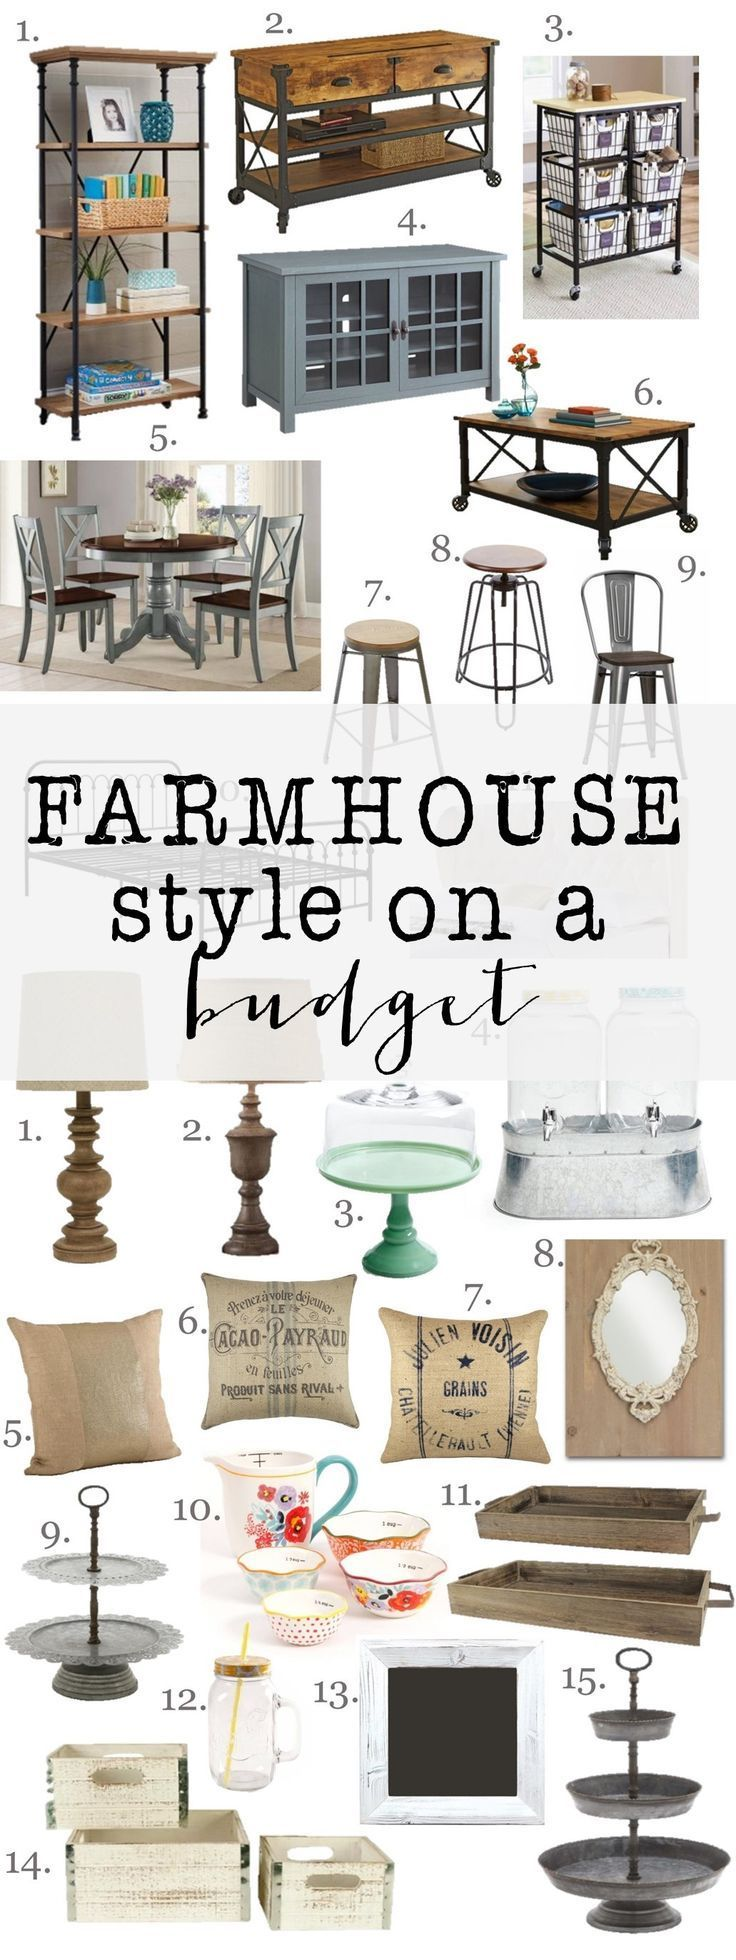 Strange 17 Best Ideas About Farmhouse Furniture On Pinterest Rustic Largest Home Design Picture Inspirations Pitcheantrous